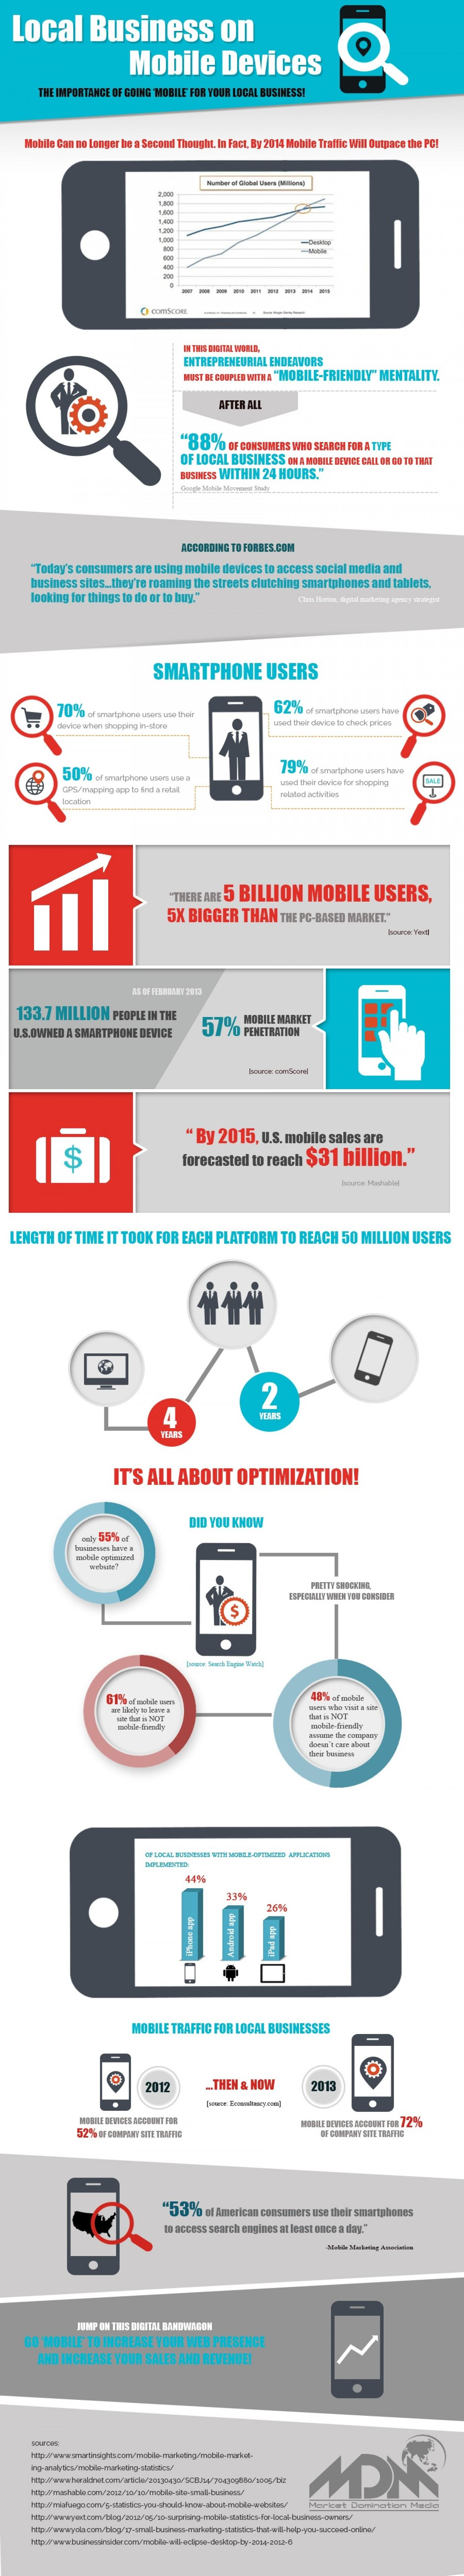 Why Your Business Should Go Mobile in 2014 [Infographic]